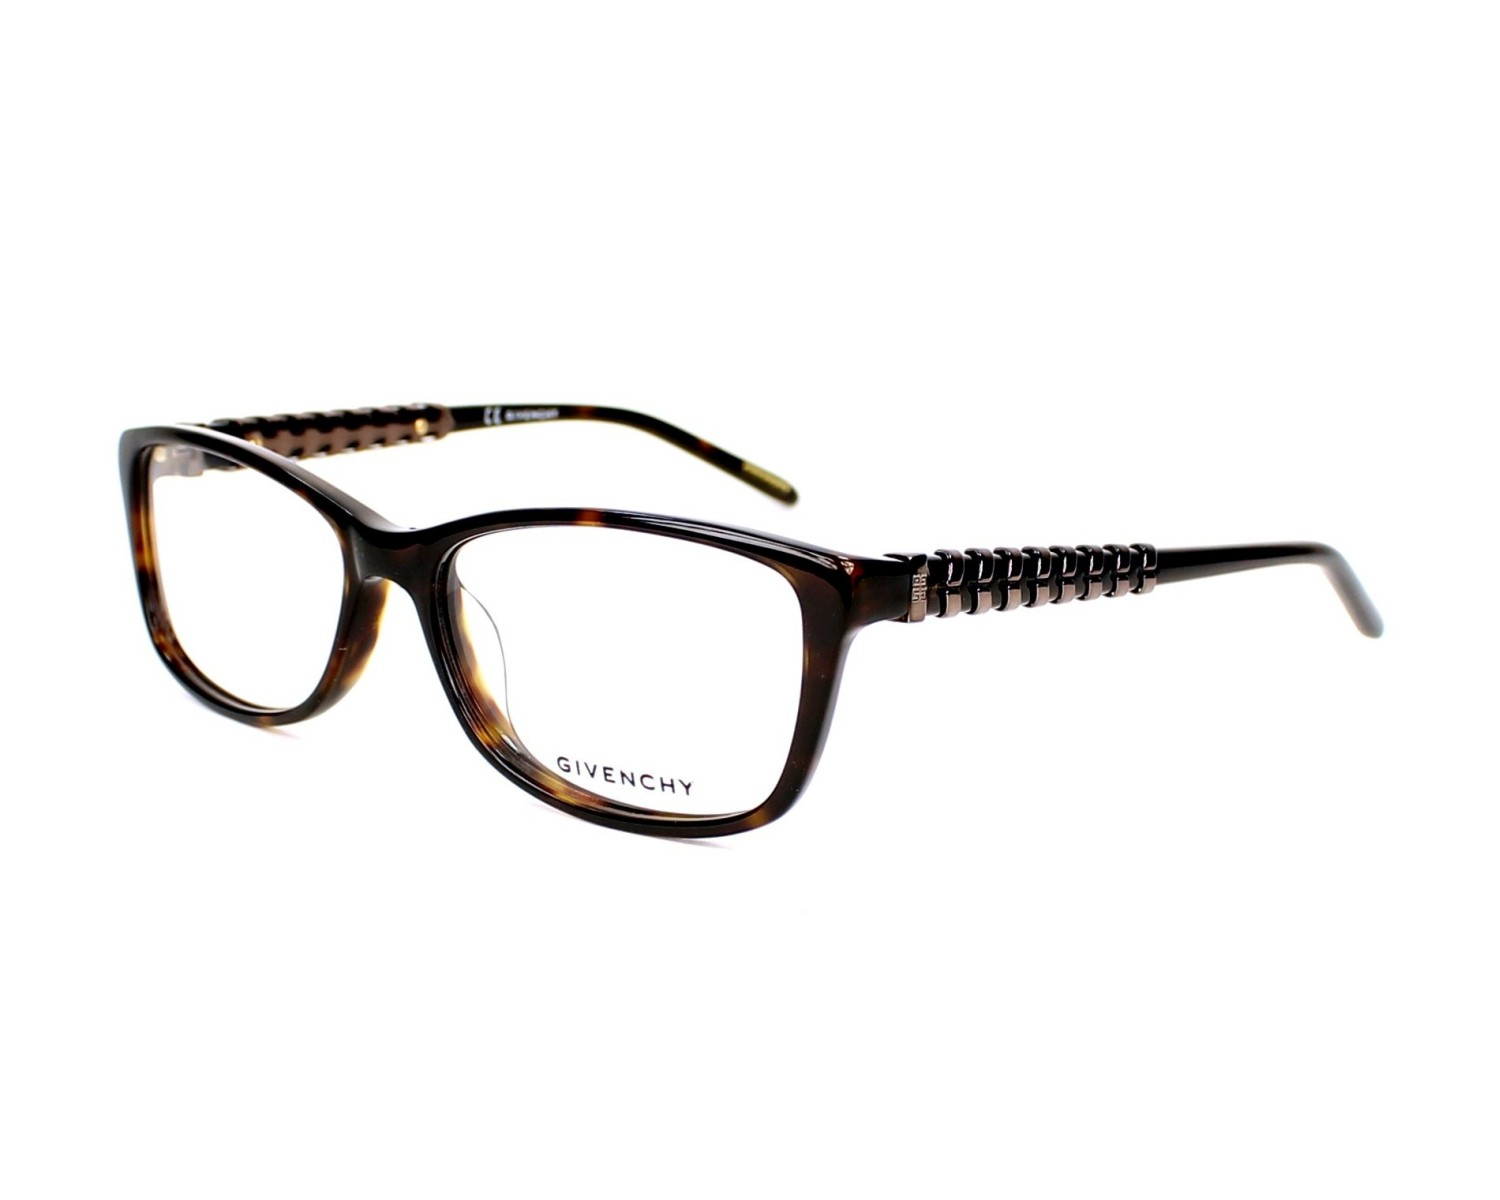 Eyeglass Frames Givenchy : Order your Givenchy eyeglasses VGV864N 0722 54 today